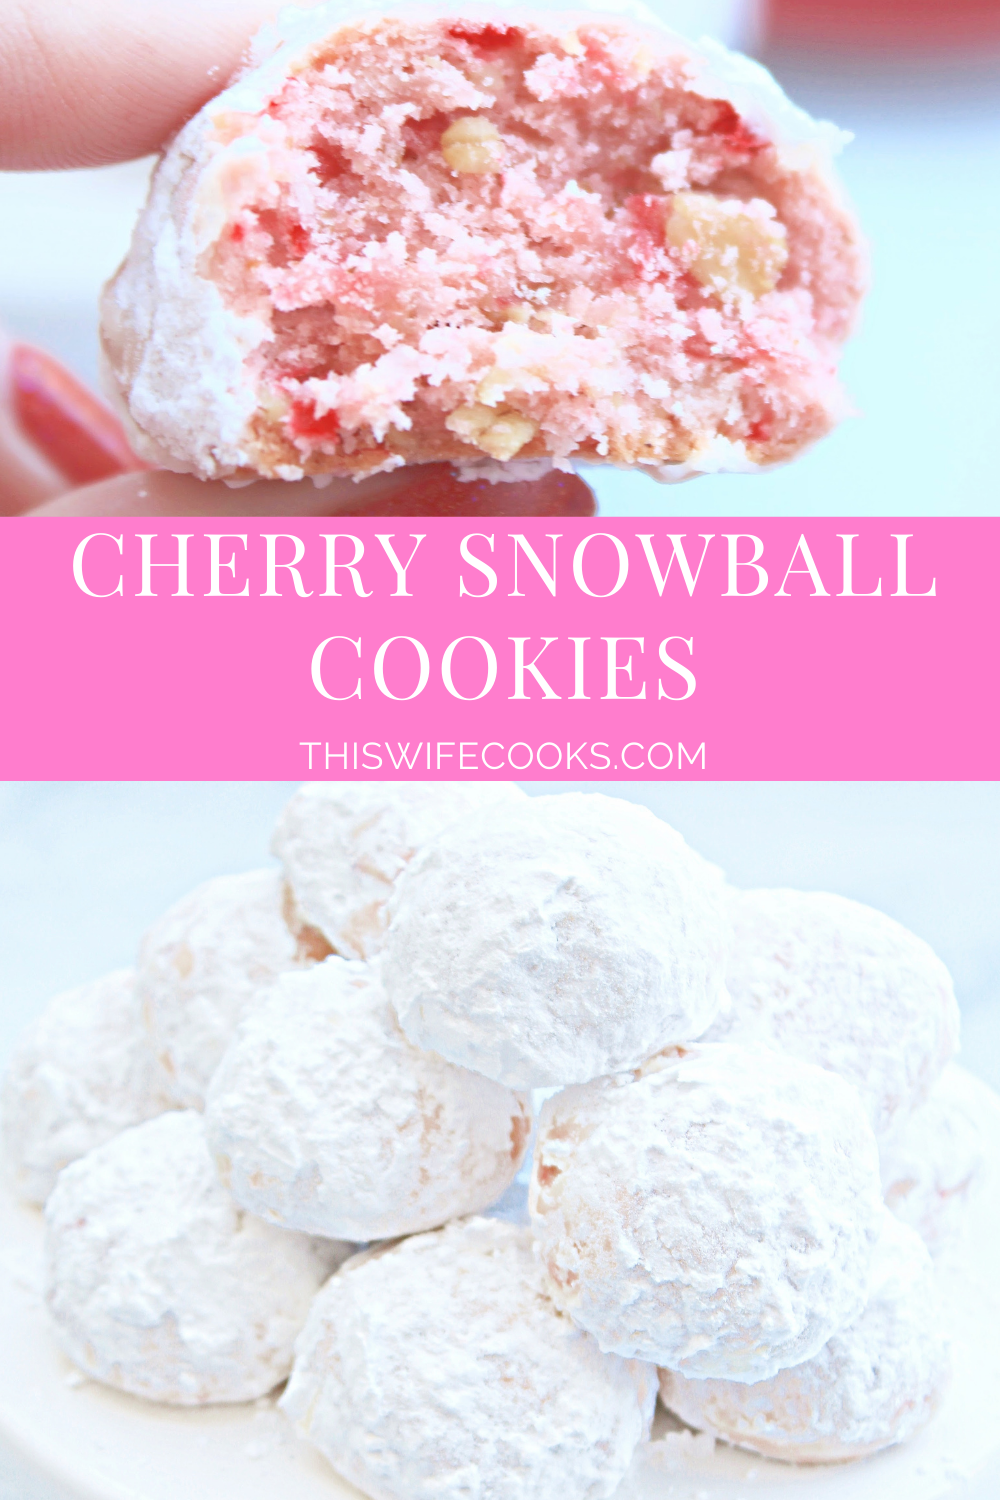 Vegan Cherry Snowball Cookies ~ These fun and festive dairy-free cookies are so easy to make and melt in your mouth! via @thiswifecooks